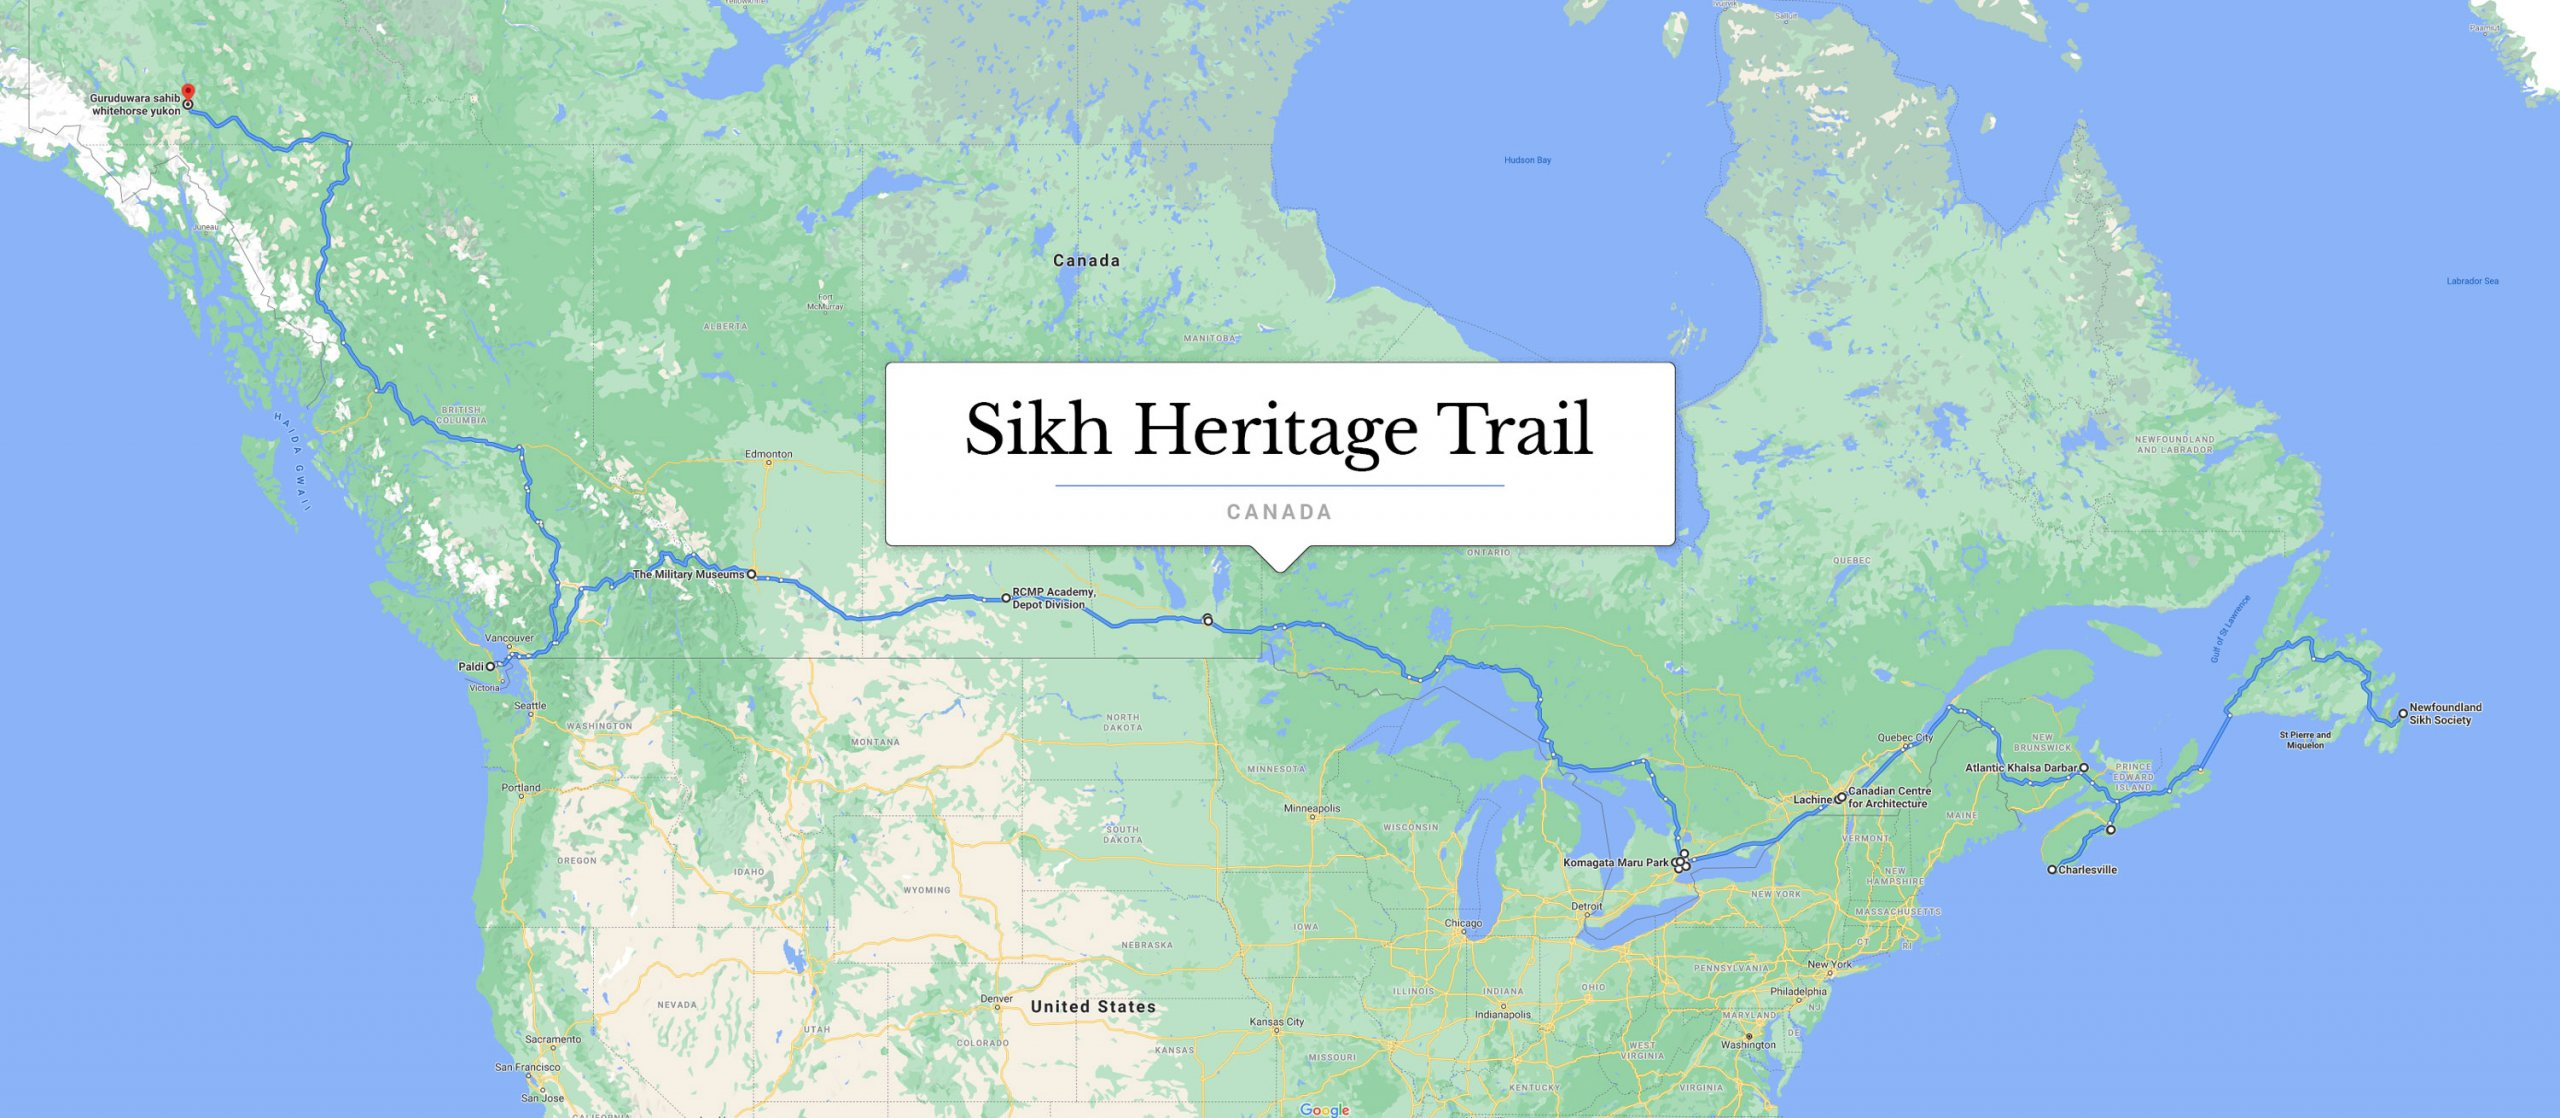 shmc-Sikh-heritage-trail-canada-cover-hi-res